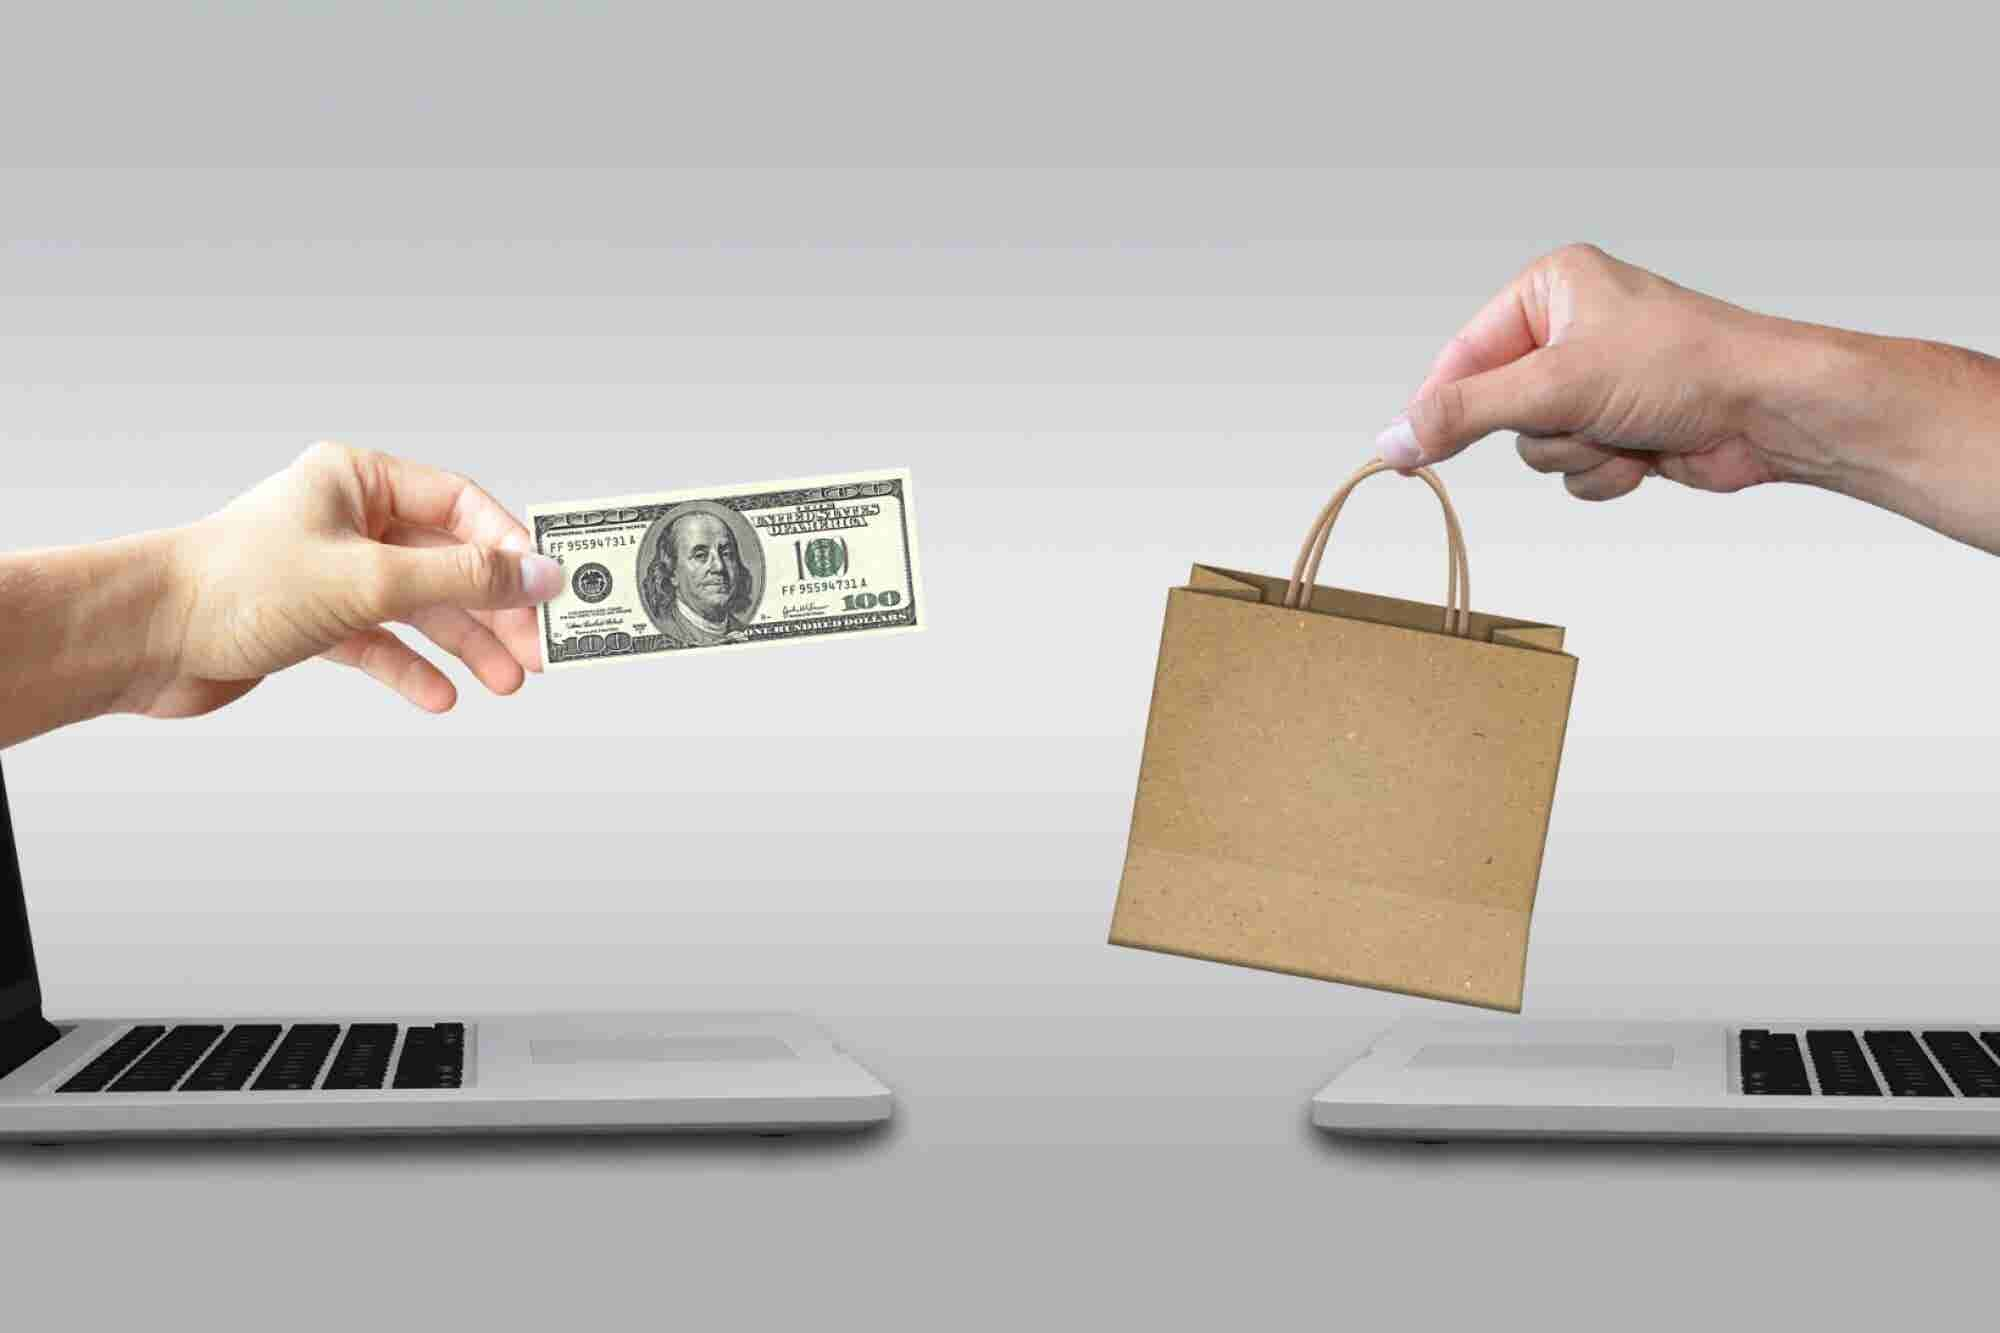 Retail 2.0-Developing An Ideal And Unified Retail Experience For Consumers